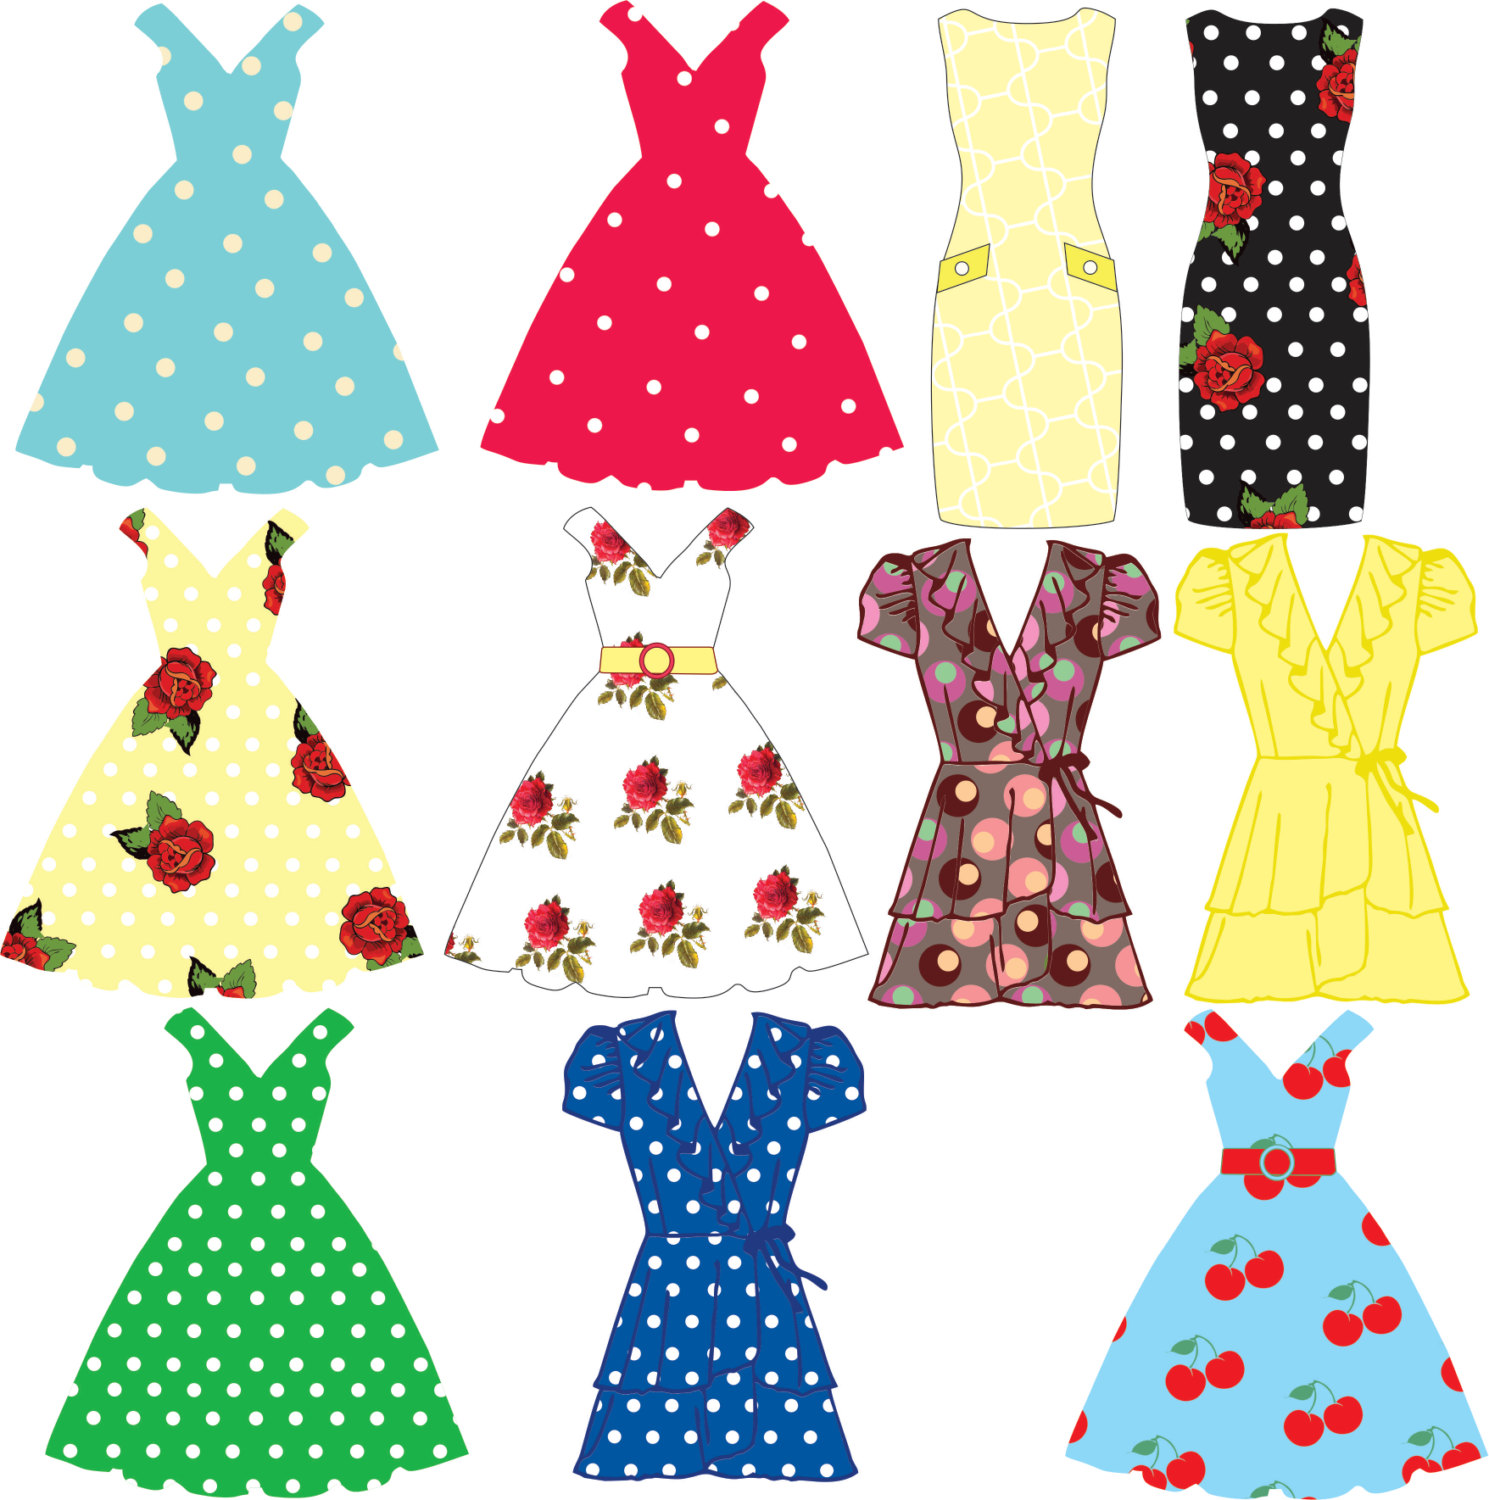 1489x1500 Tea Party Dress Clip Art, Tea Party Dresses, Tea Party Bunting